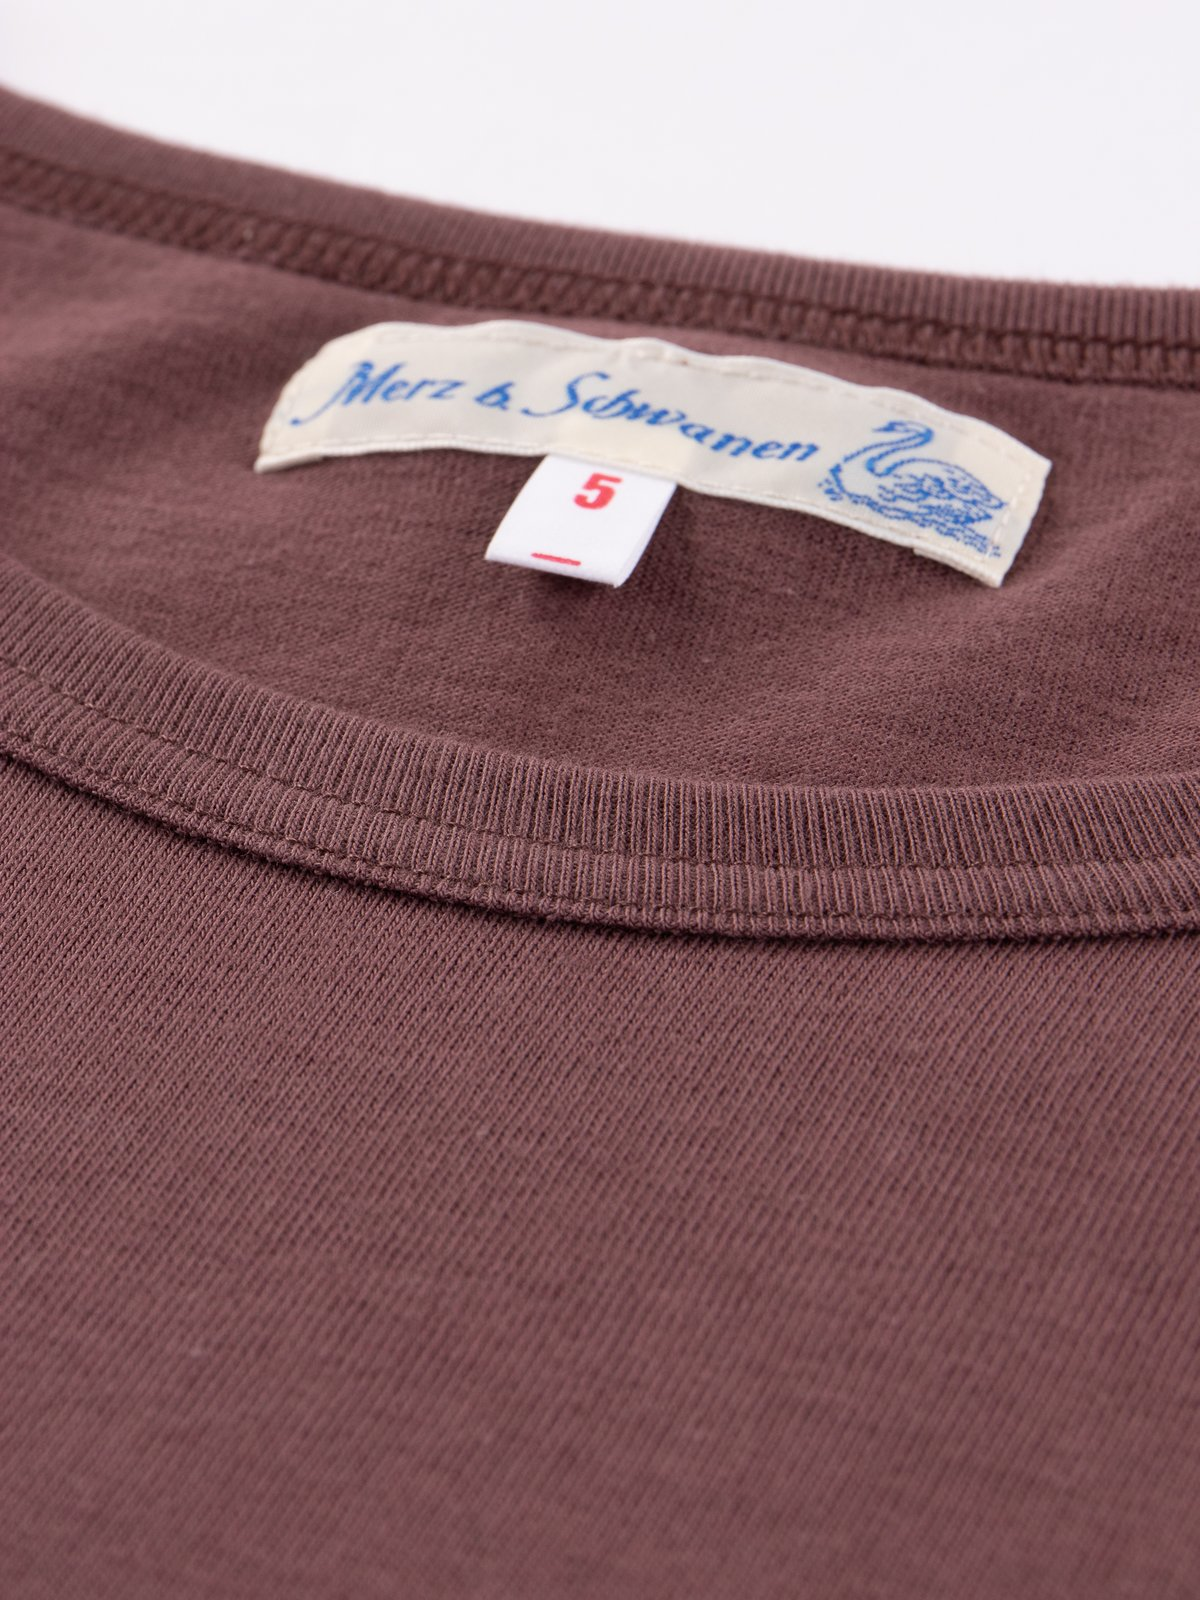 Red Oak 1950s Organic Crew Neck Tee - Image 5